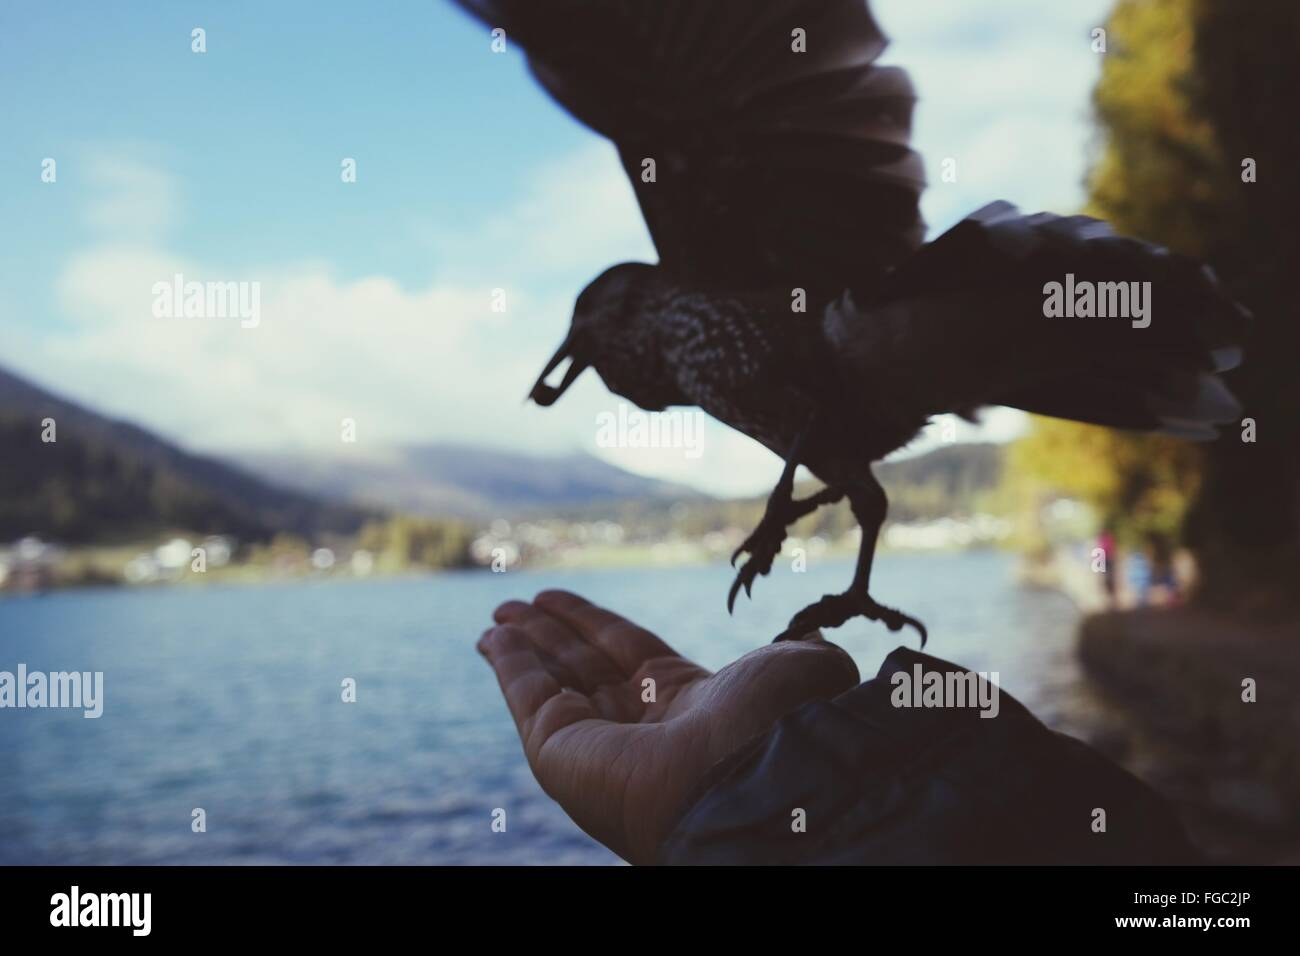 Cropped Image Of Bird Taking Off From Palm Against Sky - Stock Image